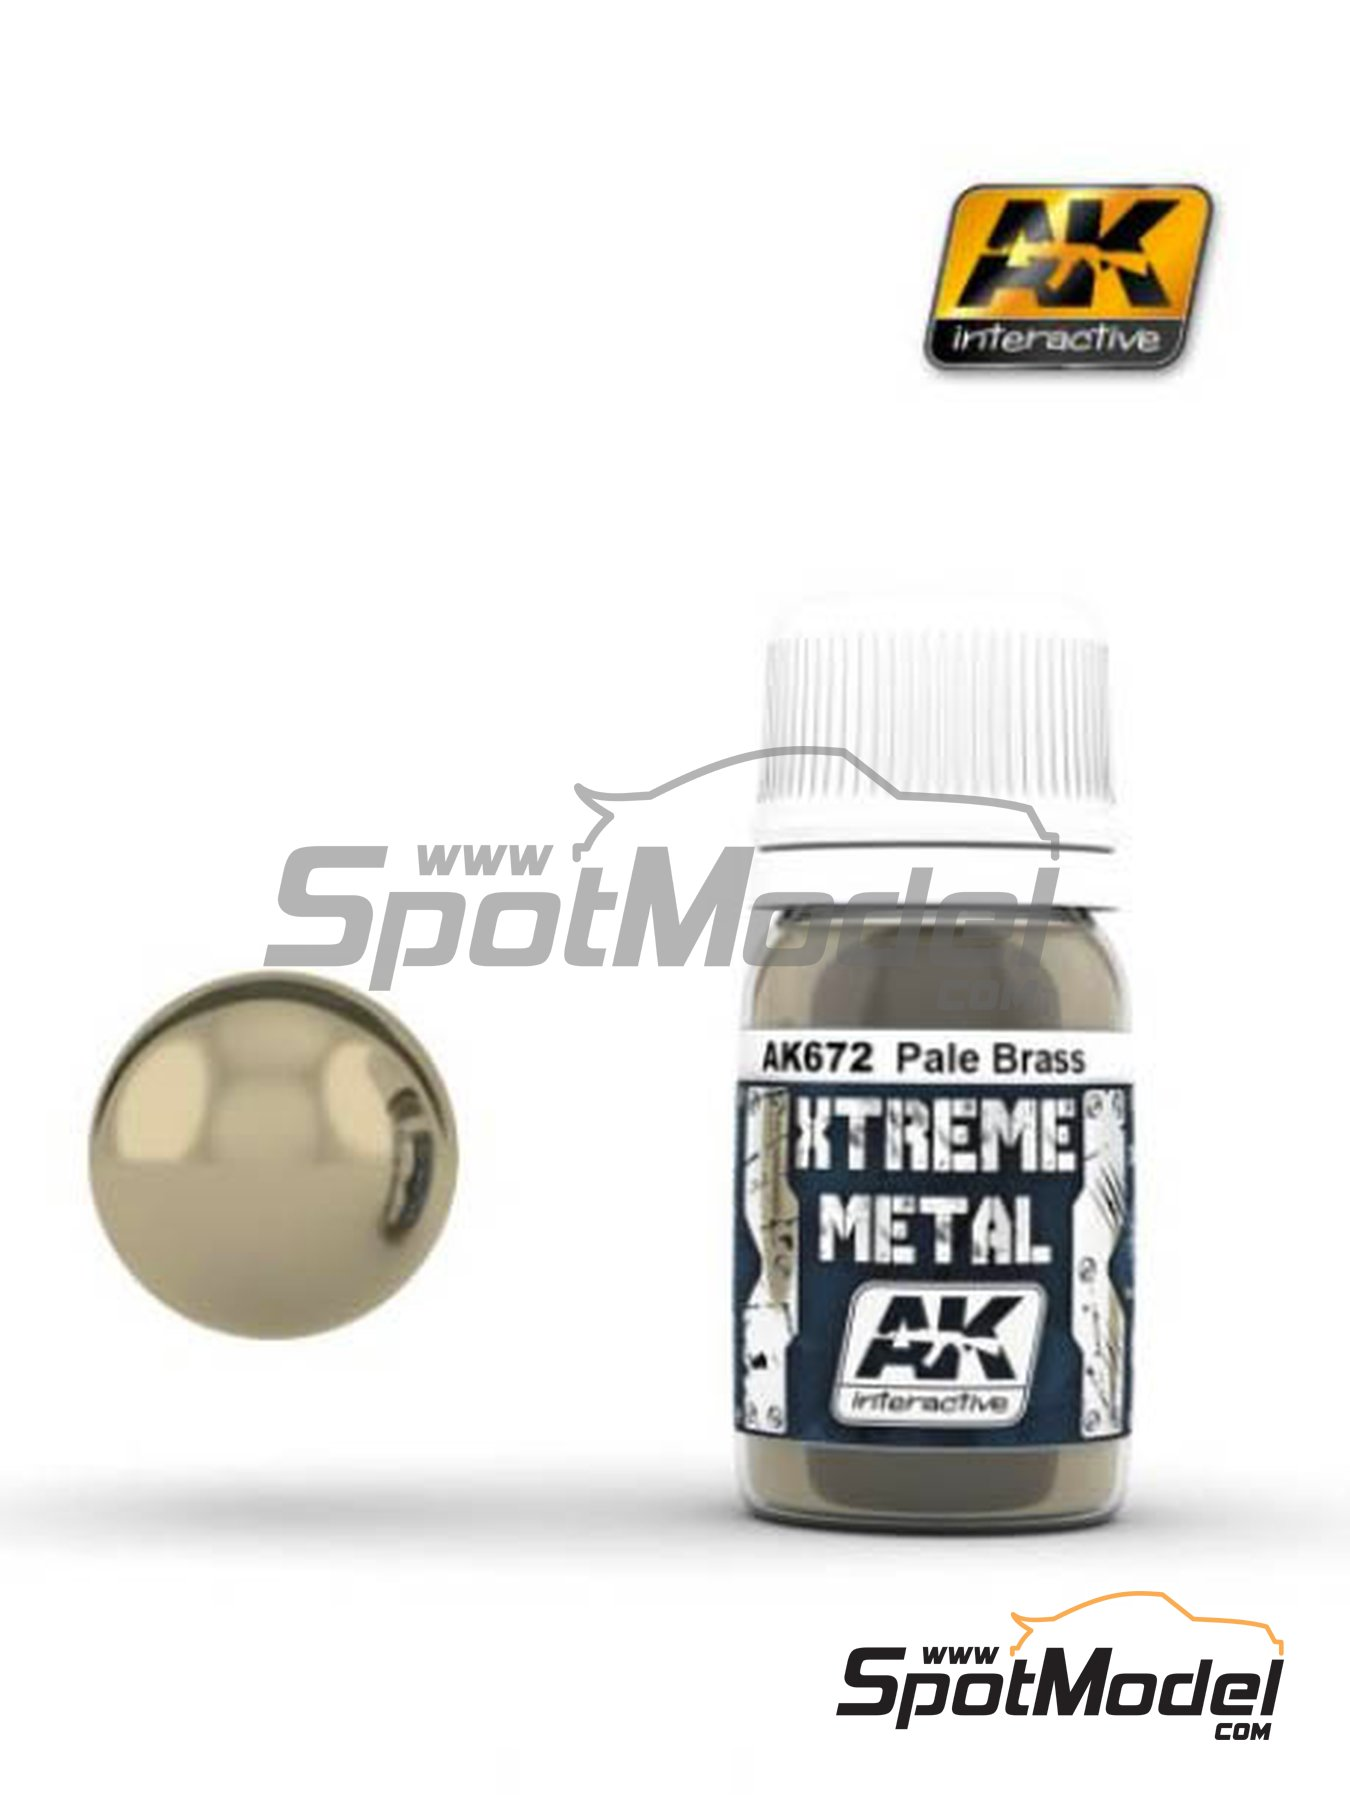 Pale brass | Xtreme metal paint manufactured by AK Interactive (ref. AK-672) image